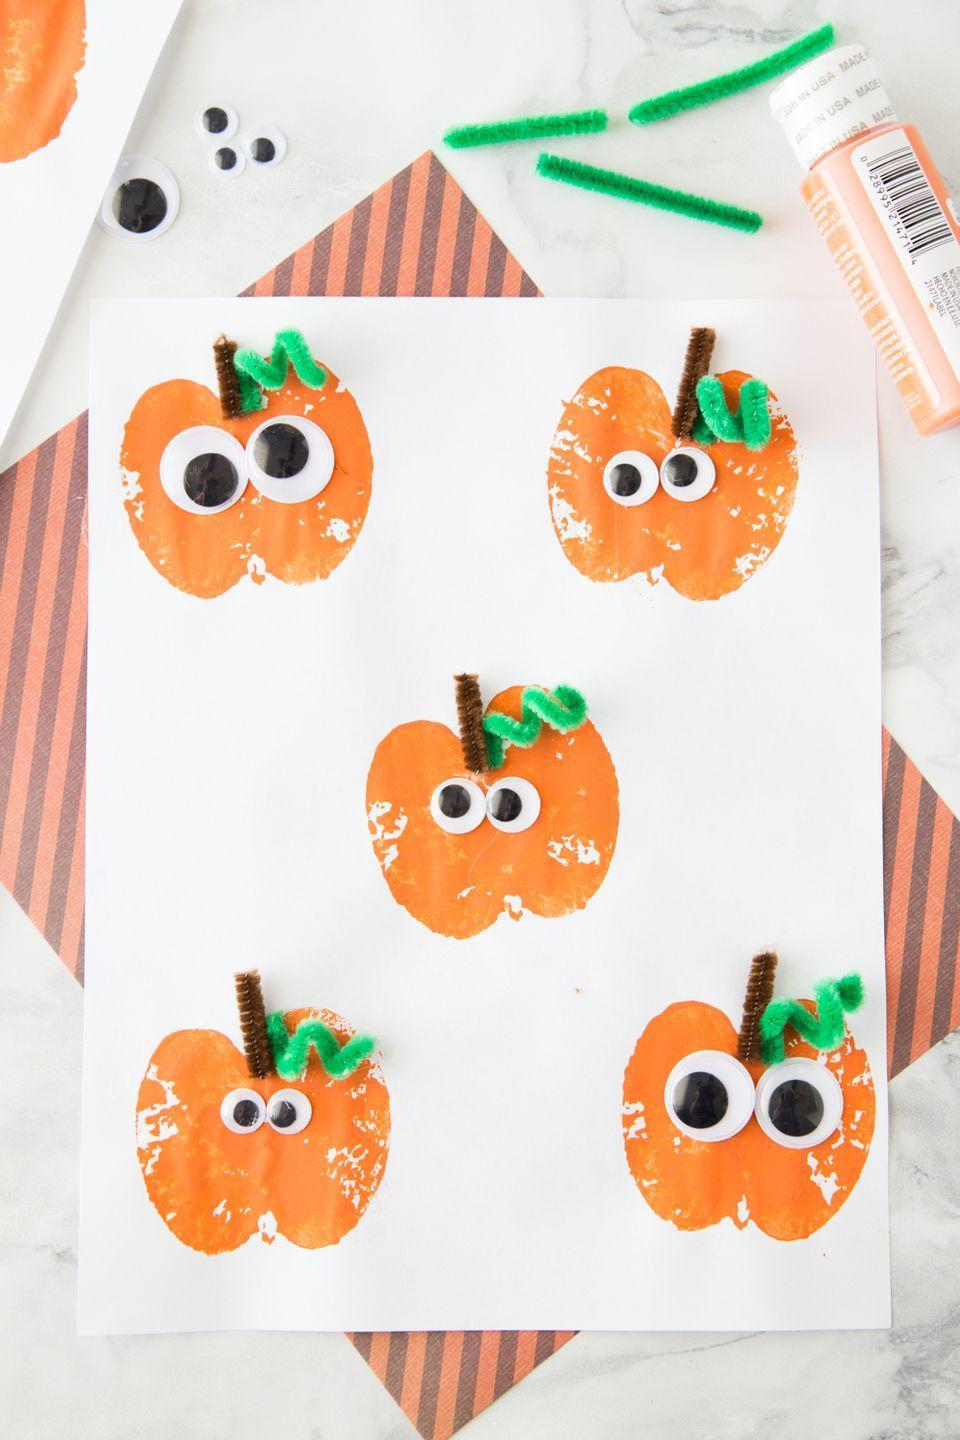 "<p>Cut an apple in half and voilà! You've got an easy-to-use stamp for making pumpkin-printed cards and more. Add googly eyes and pipe cleaners for the stem. Pro tip: Wrap the green pipe cleaner around a pencil to get a perfectly curled leaf.</p><p><strong>Get the tutorial at <a href=""https://www.madetobeamomma.com/apple-stamping-pumpkin-craft/"" rel=""nofollow noopener"" target=""_blank"" data-ylk=""slk:Made to be a Momma"" class=""link rapid-noclick-resp"">Made to be a Momma</a>.</strong></p><p><a class=""link rapid-noclick-resp"" href=""https://www.amazon.com/DECORA-Pieces-Wiggle-Googly-Self-adhesive/dp/B01LWIYJH3/?tag=syn-yahoo-20&ascsubtag=%5Bartid%7C10050.g.4950%5Bsrc%7Cyahoo-us"" rel=""nofollow noopener"" target=""_blank"" data-ylk=""slk:SHOP GOOGLY EYES"">SHOP GOOGLY EYES</a><br></p>"